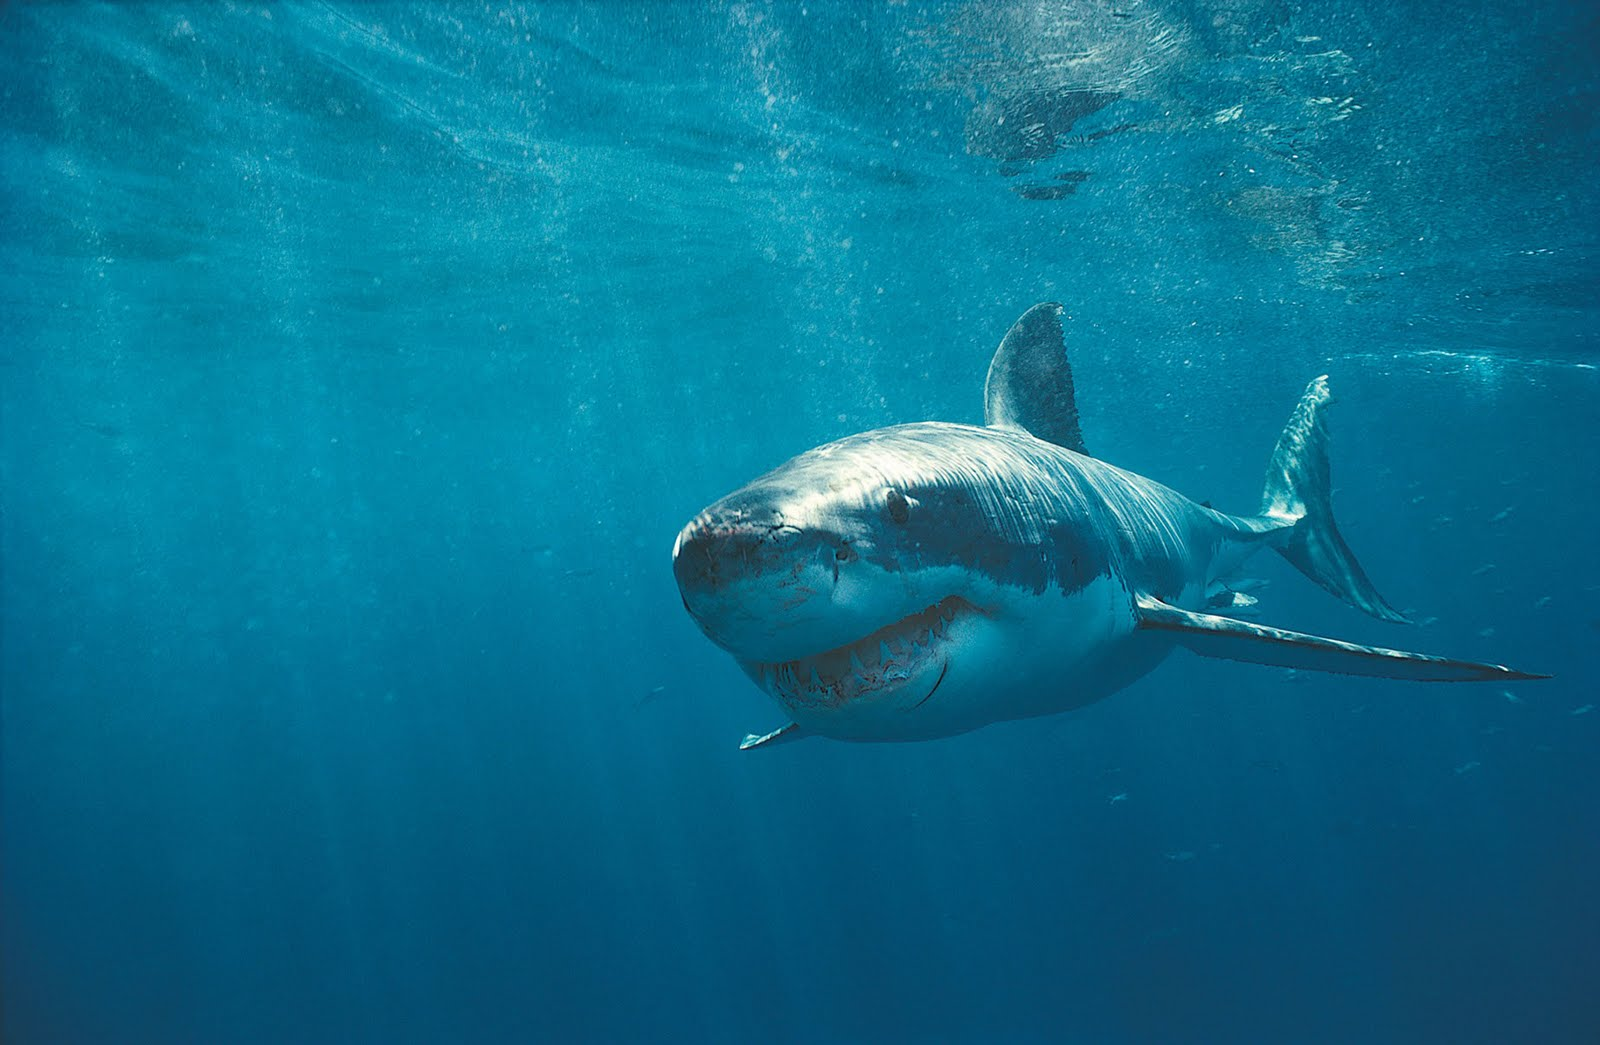 The Great White Shark Hi Def